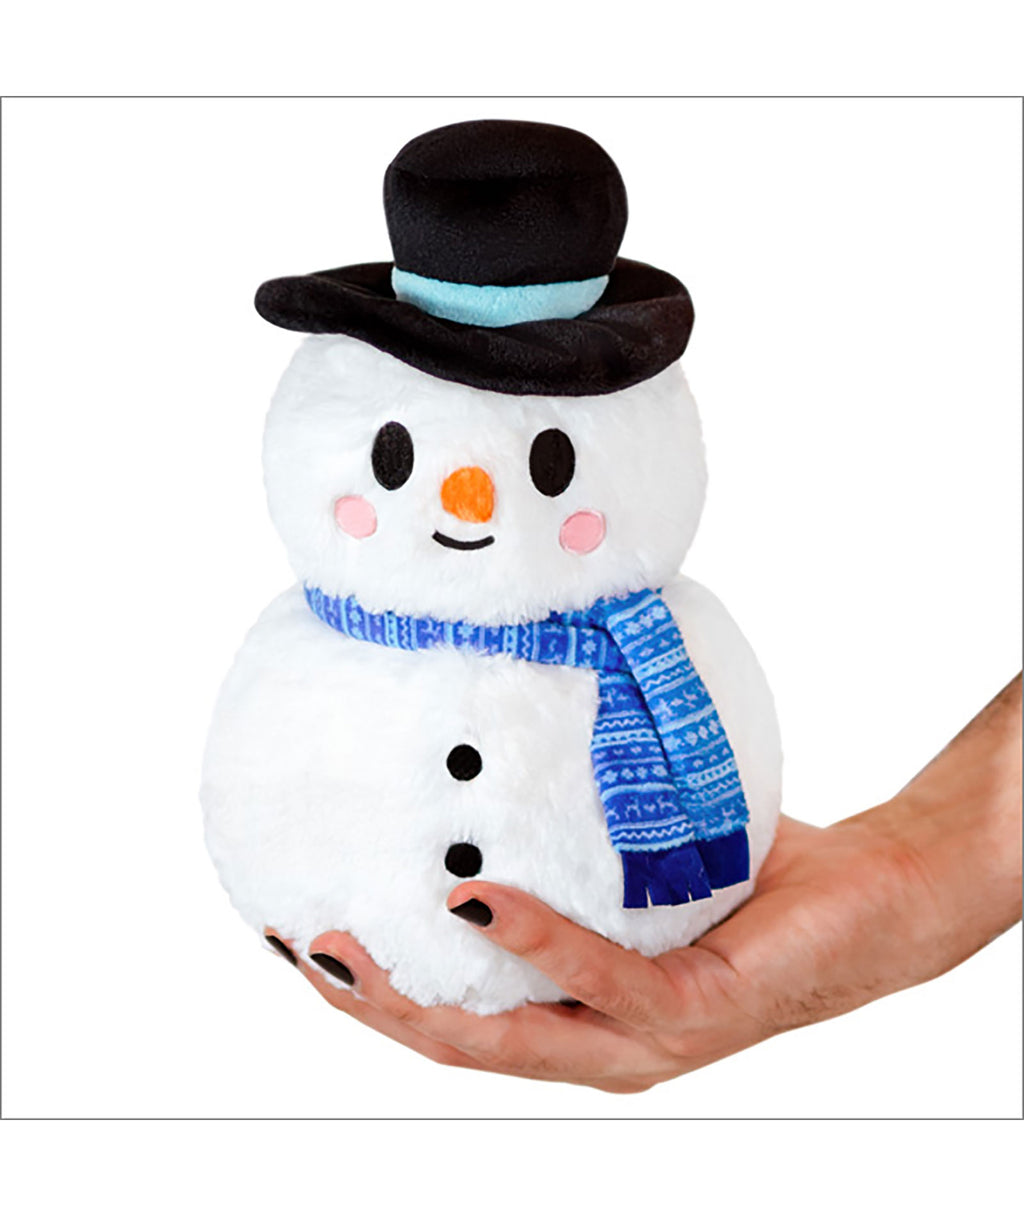 Squishable Mini Cute Snowman